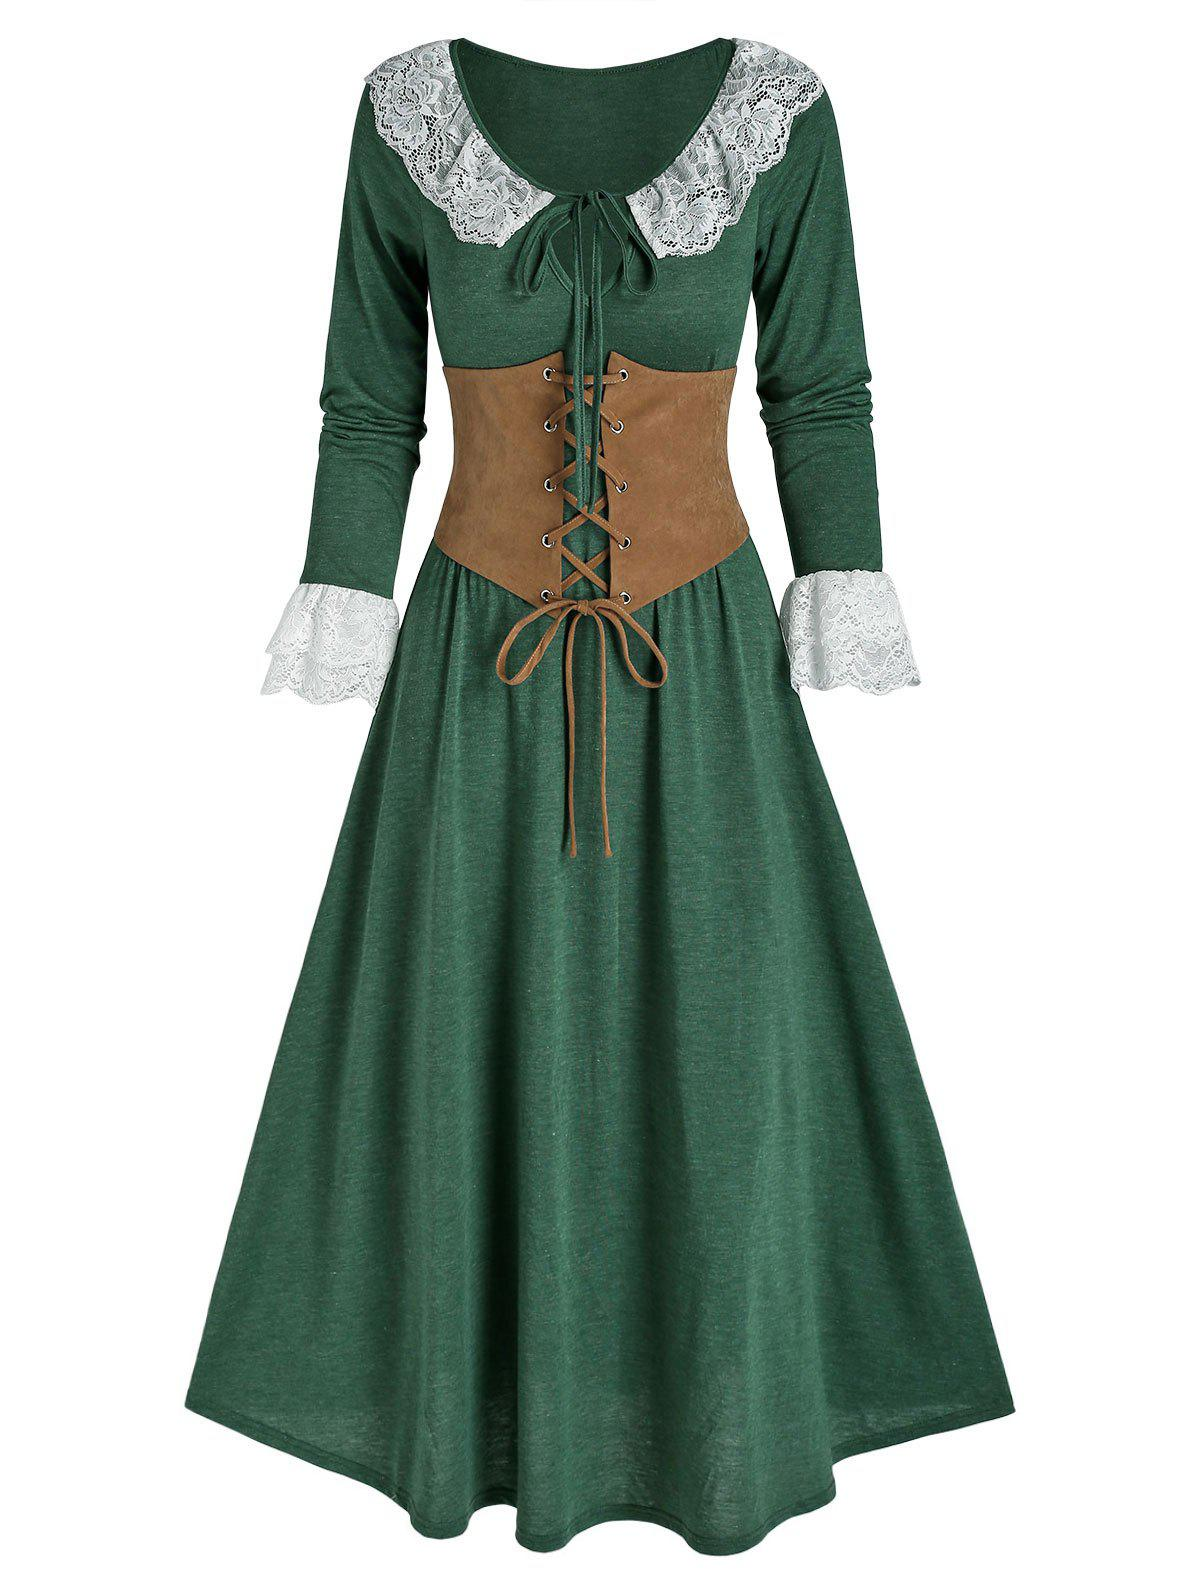 Lace Insert Bowknot Heathered Dress and Lace-up Corset - DEEP GREEN 2XL